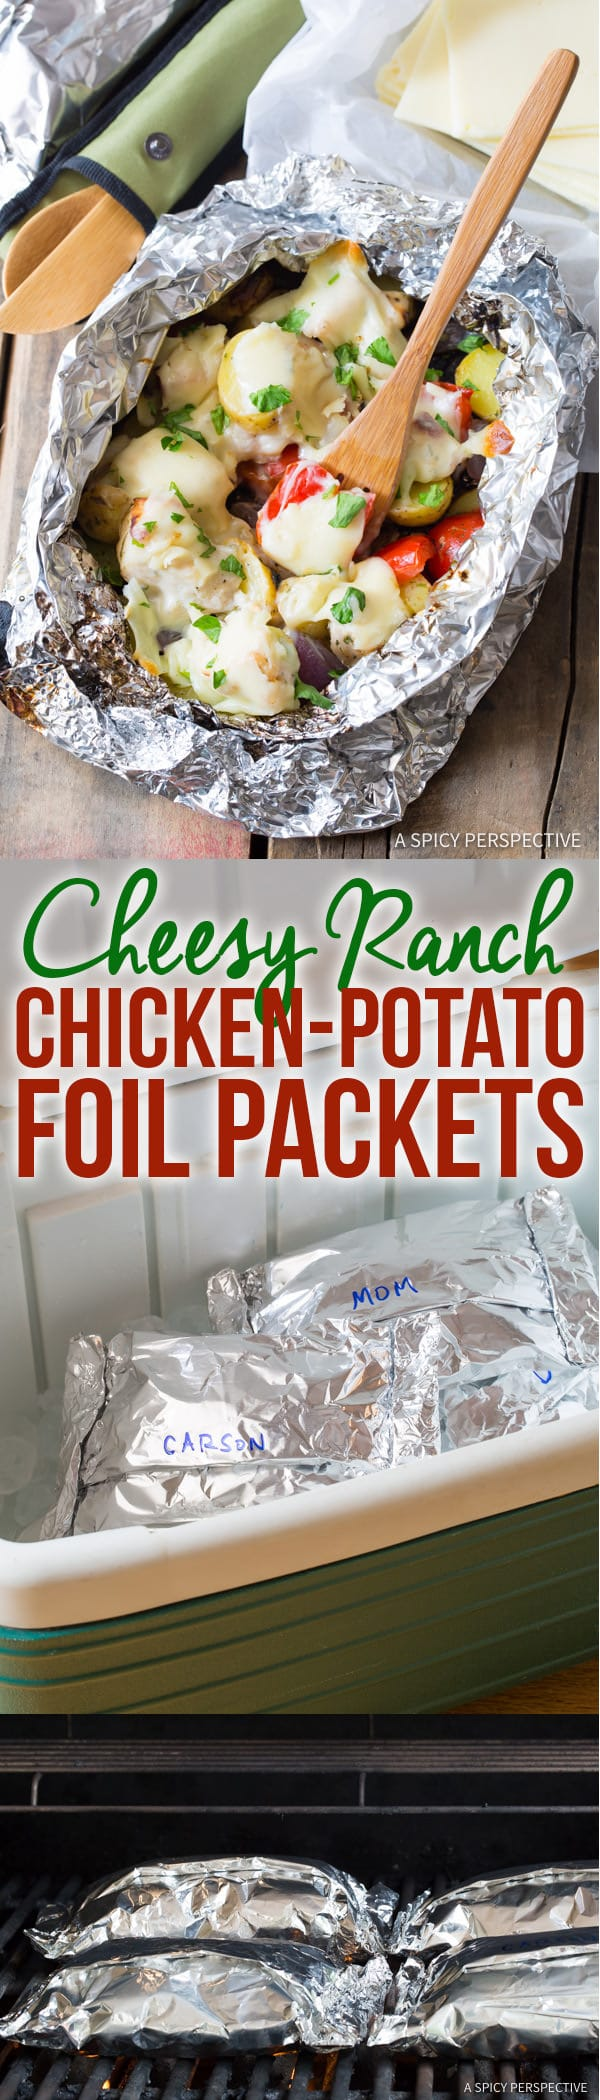 Perfect Cheesy Ranch Chicken Potato Foil Packets - Great for Camping, Tailgating, & Picnics!